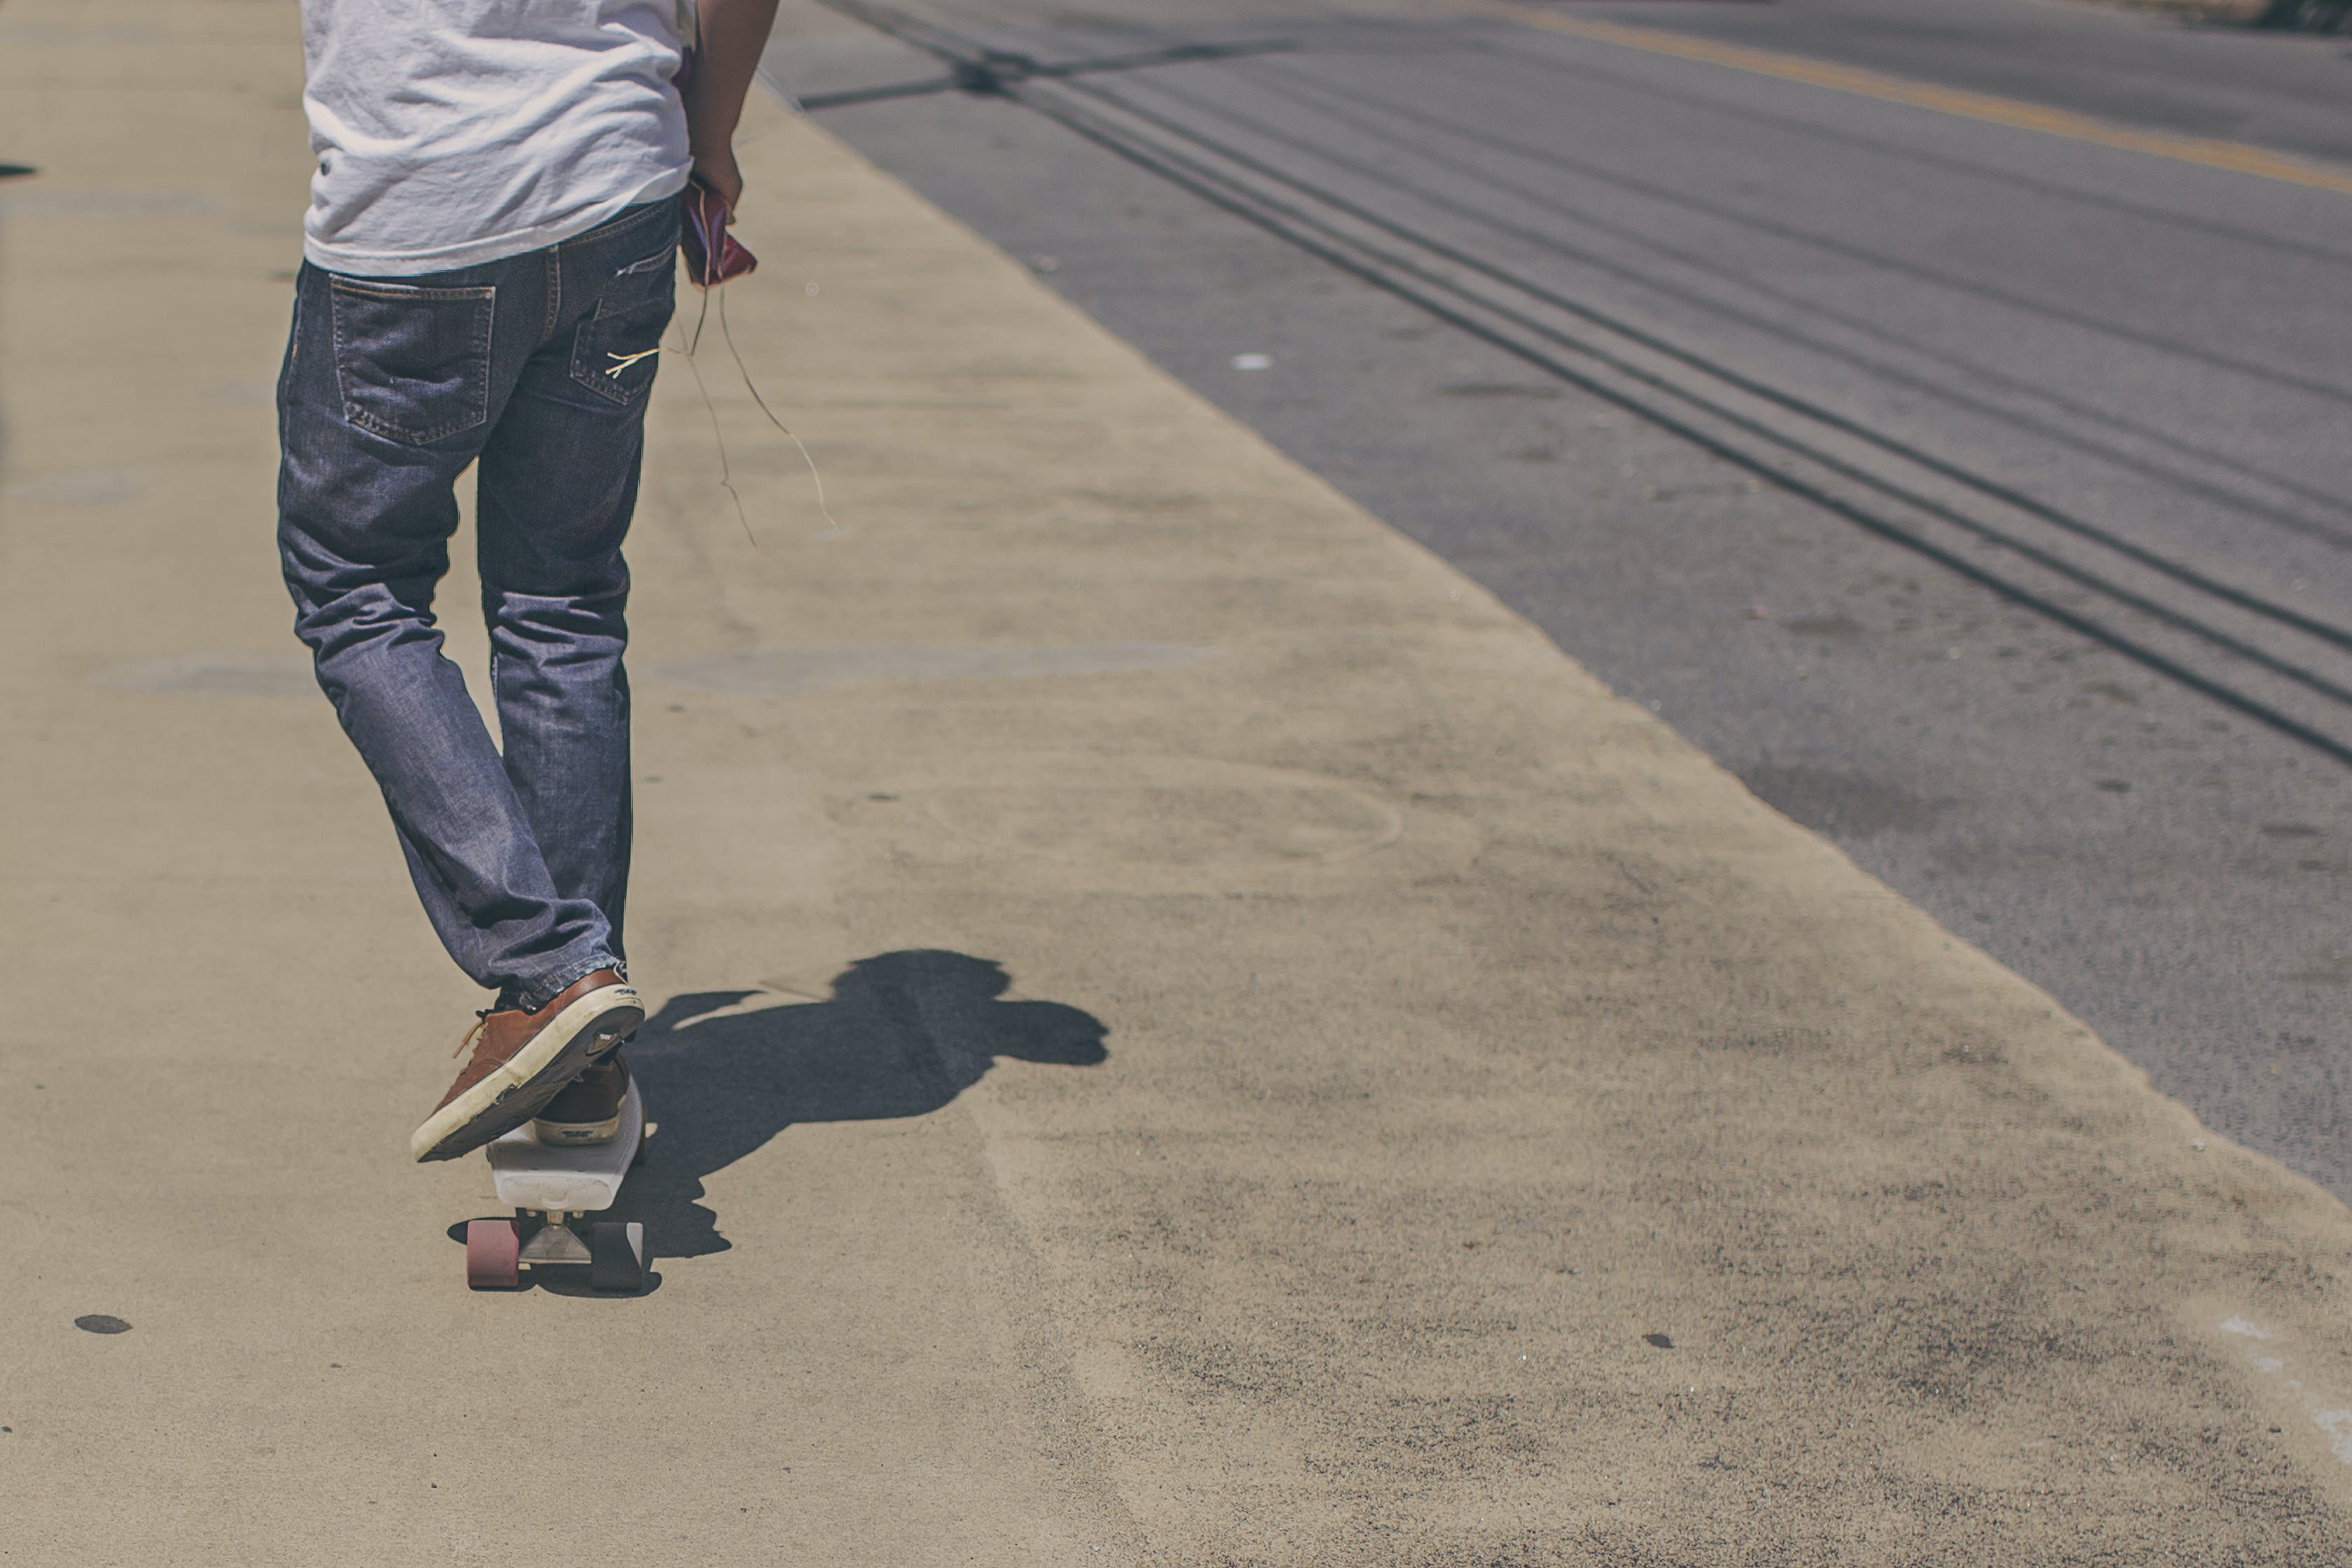 Man Riding Skateboard on Road